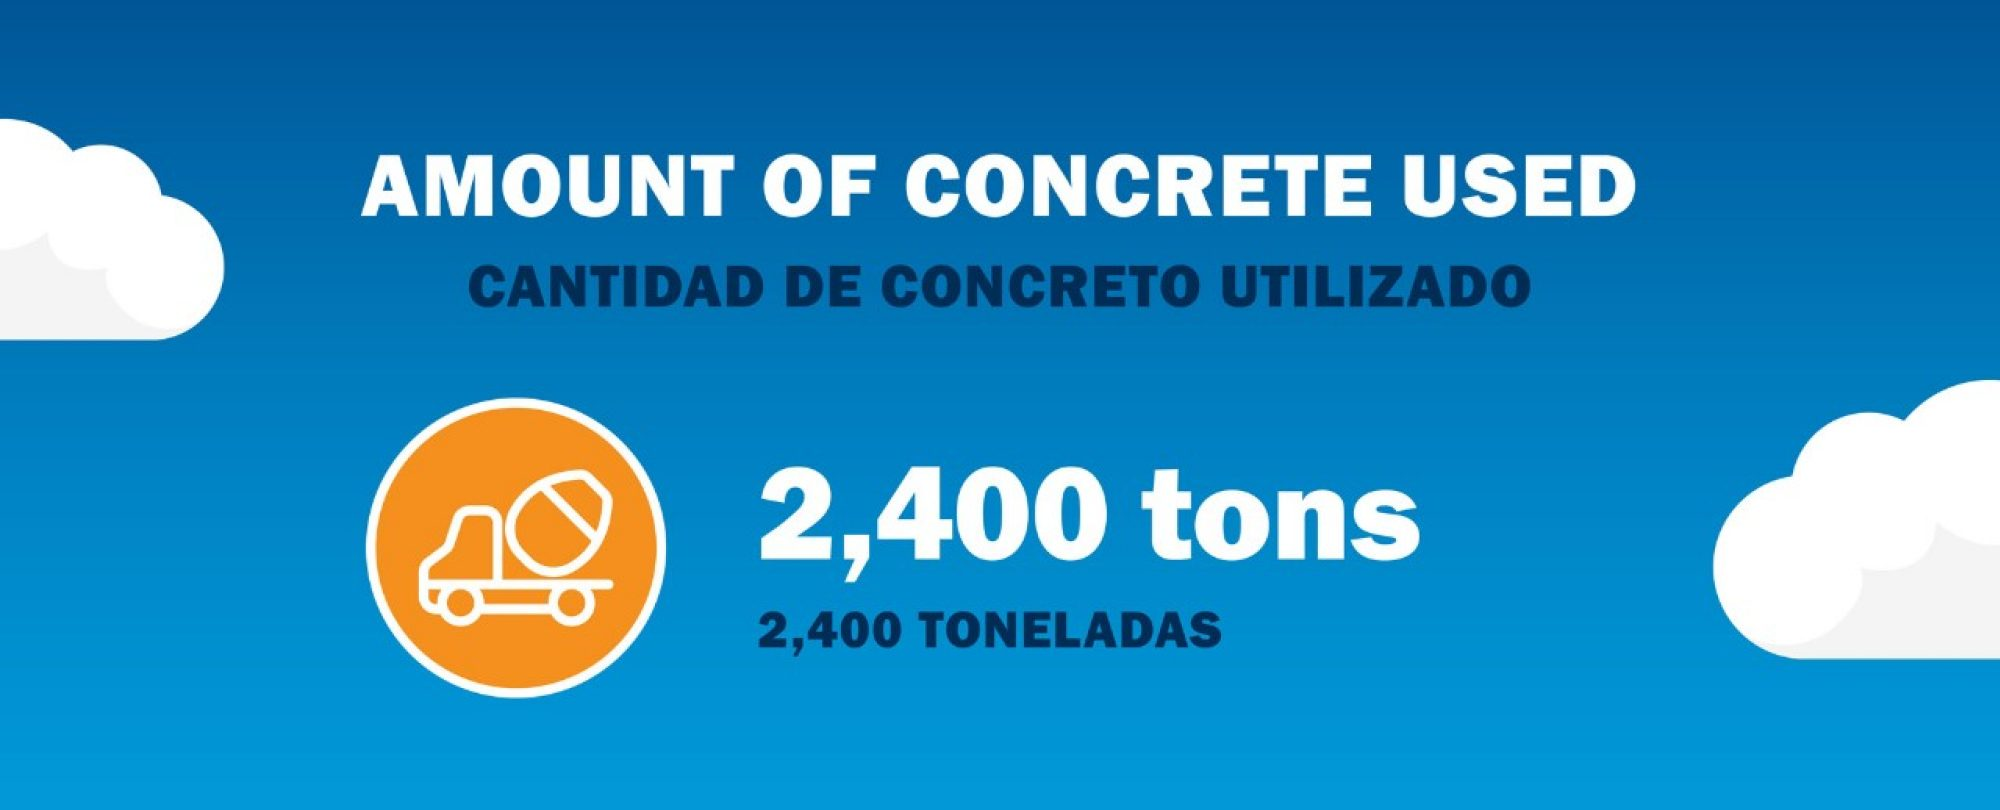 Amount of concrete used: 2,400 tons